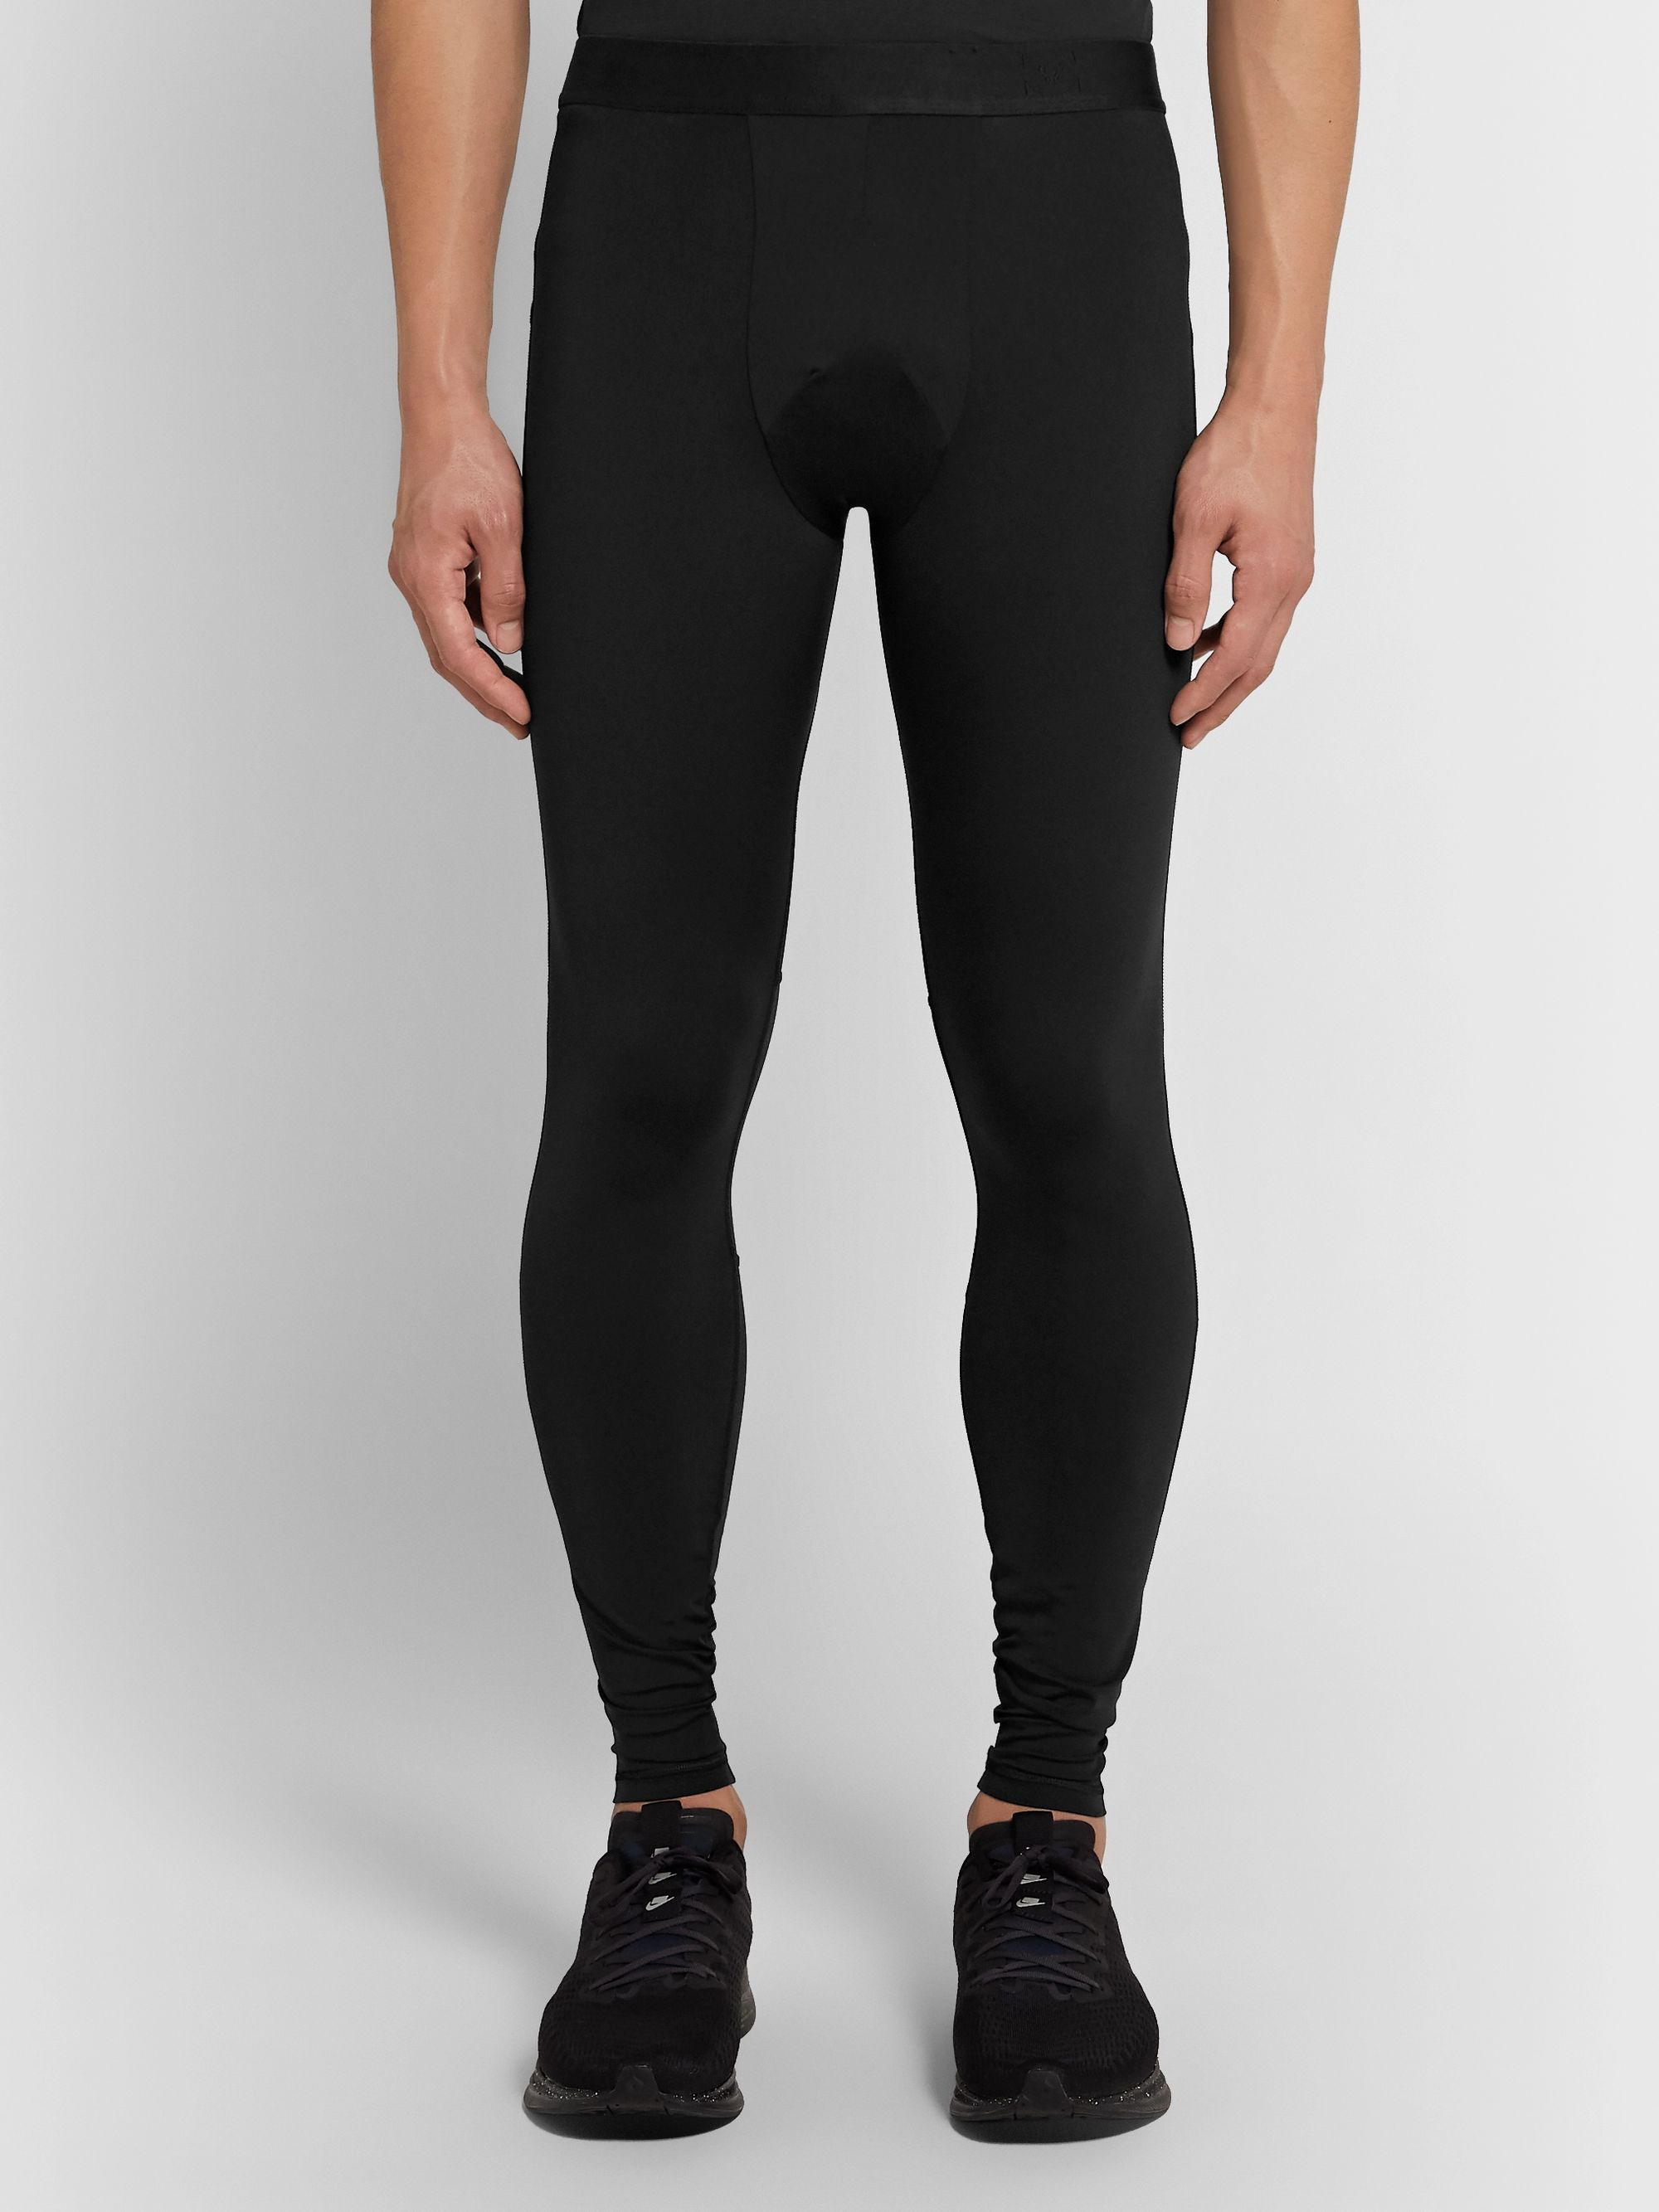 Lululemon Surge Light Nulux Tights